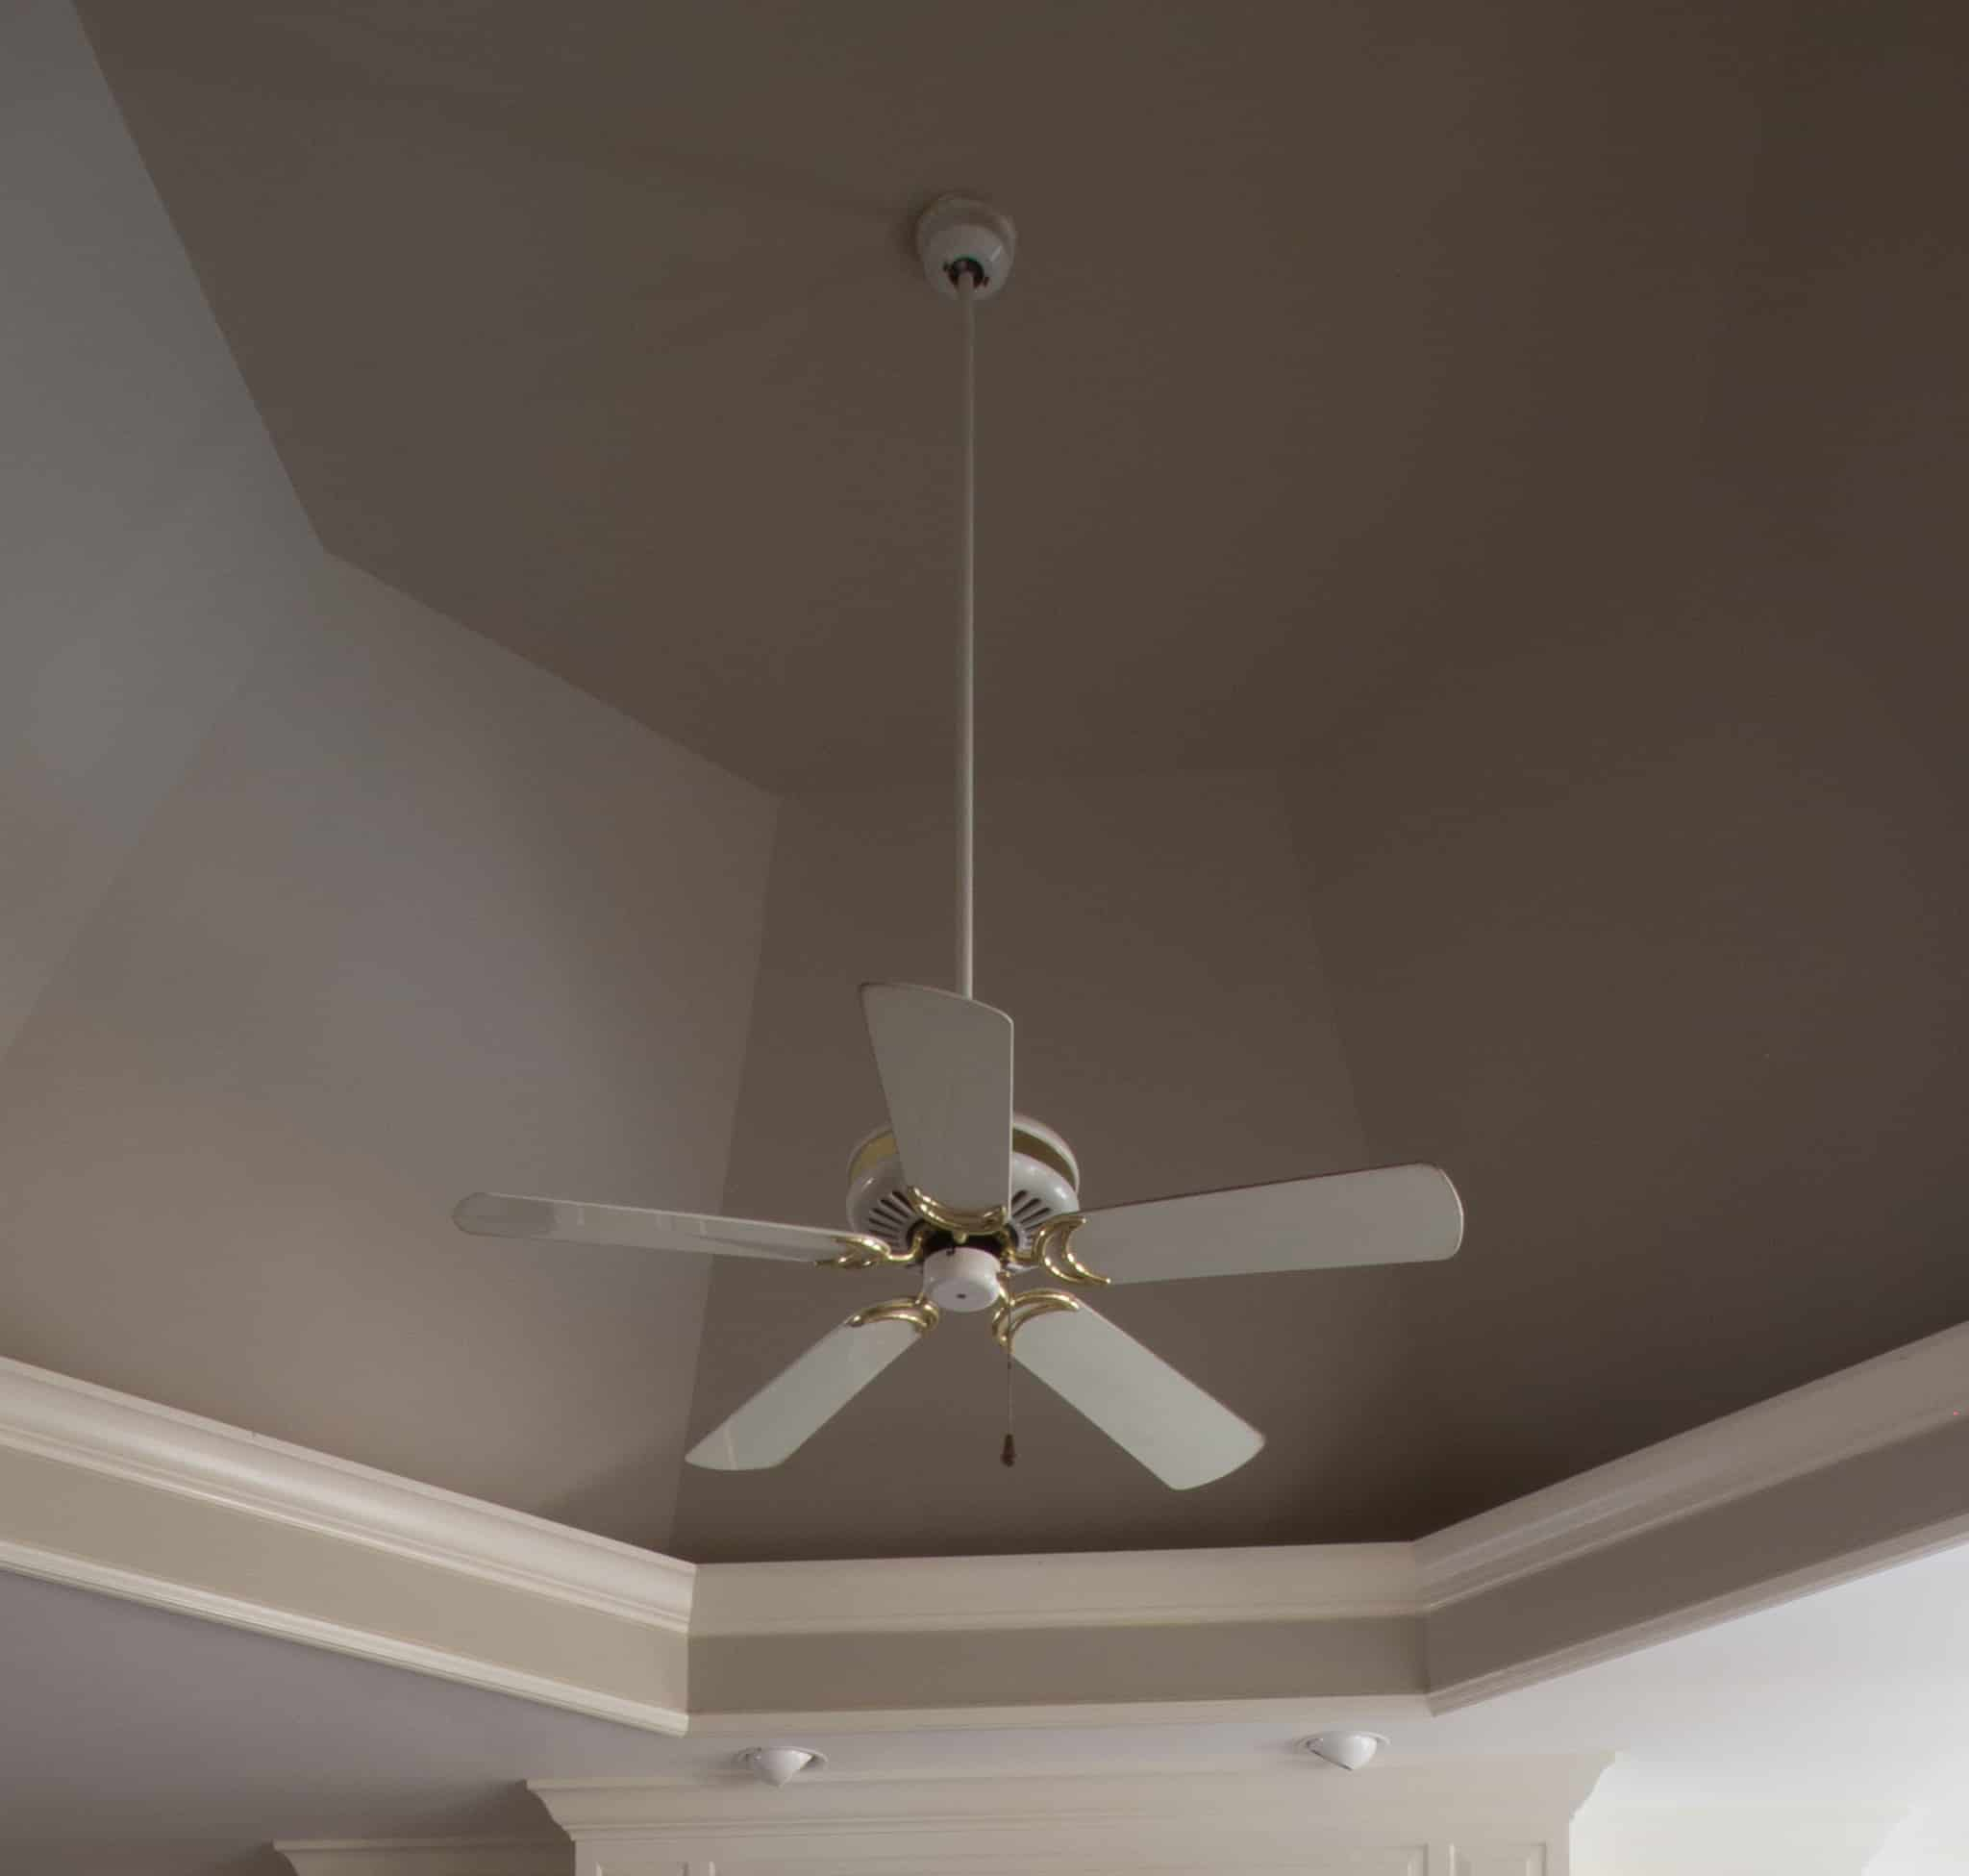 Before we updated our ceiling fan.